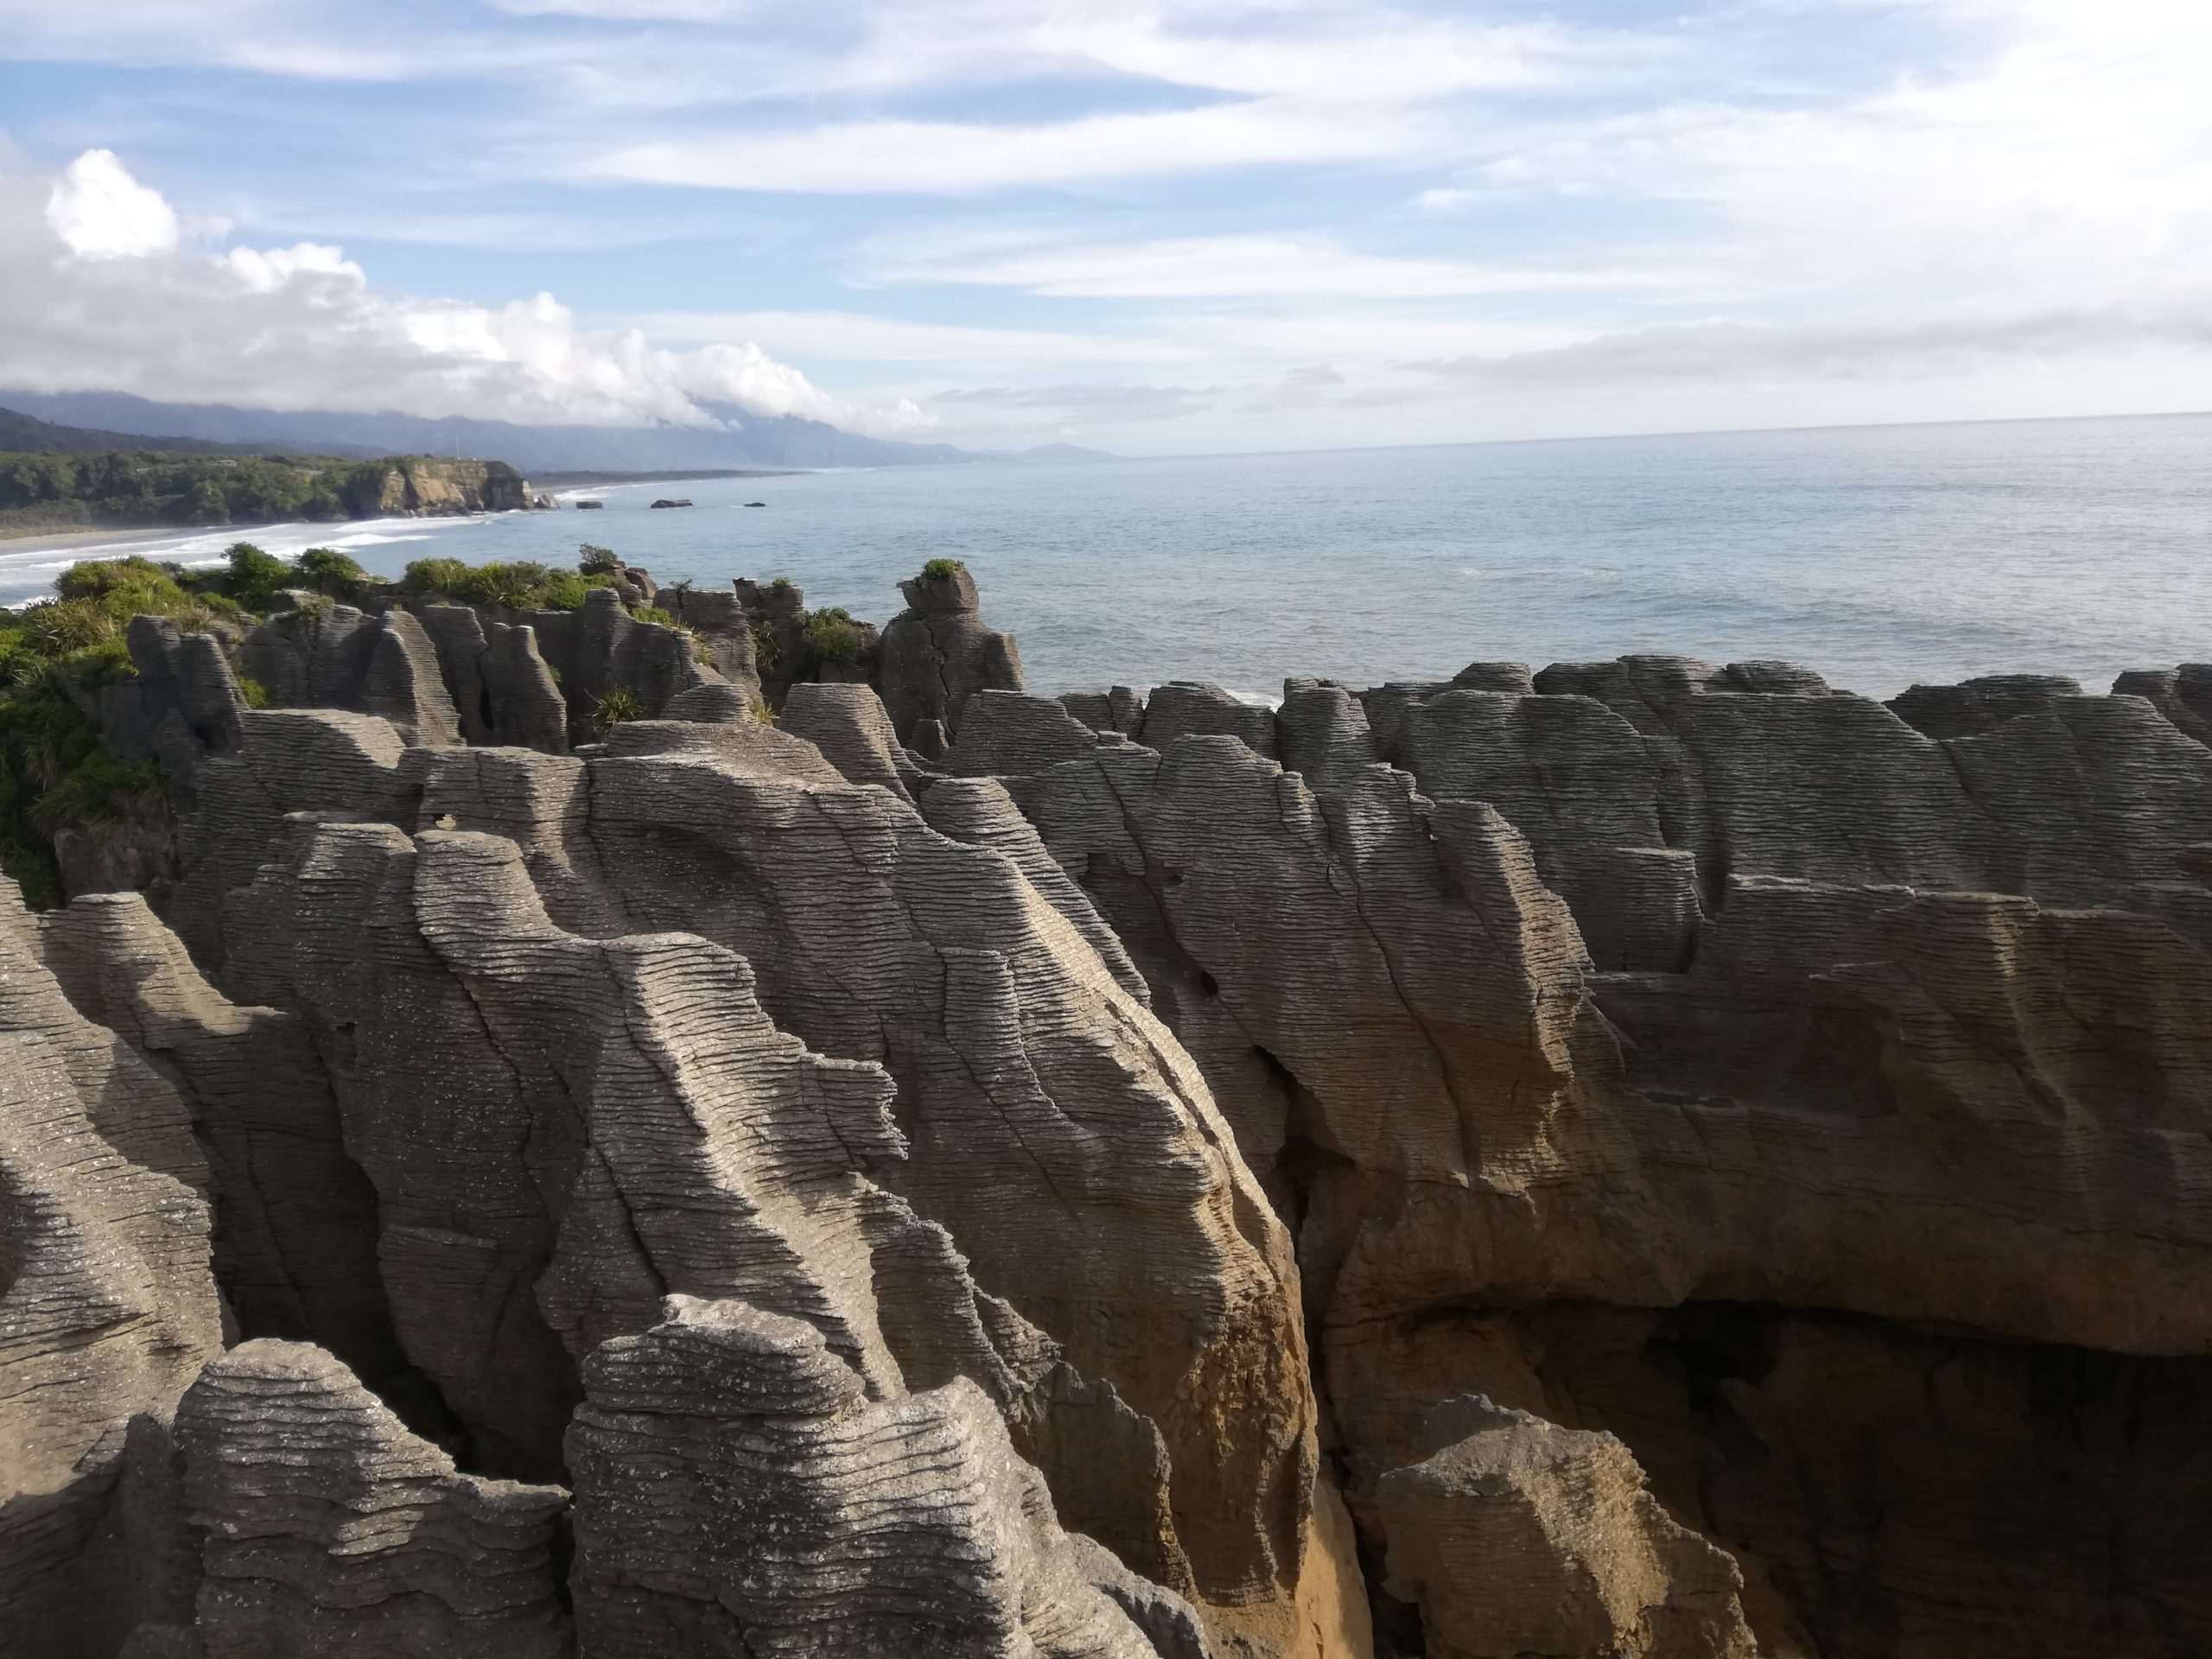 Pancake rocks is an interesting geological formation in NZ. Interesting enough to take anyone's mind off burnout.